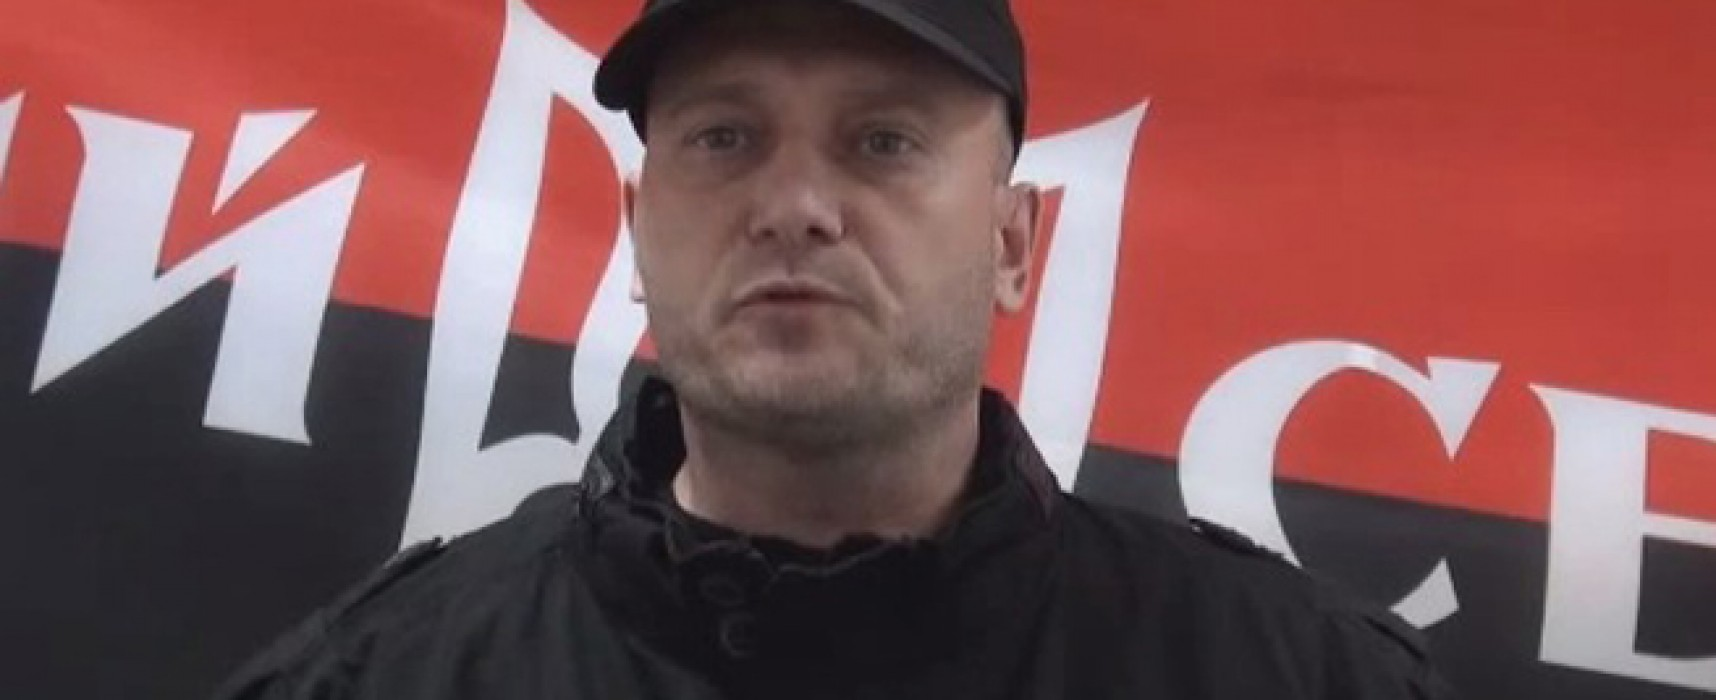 Yarosh Did Not Announce that His Battalions Continued Attacking after the Ceasefire Had Been Declared